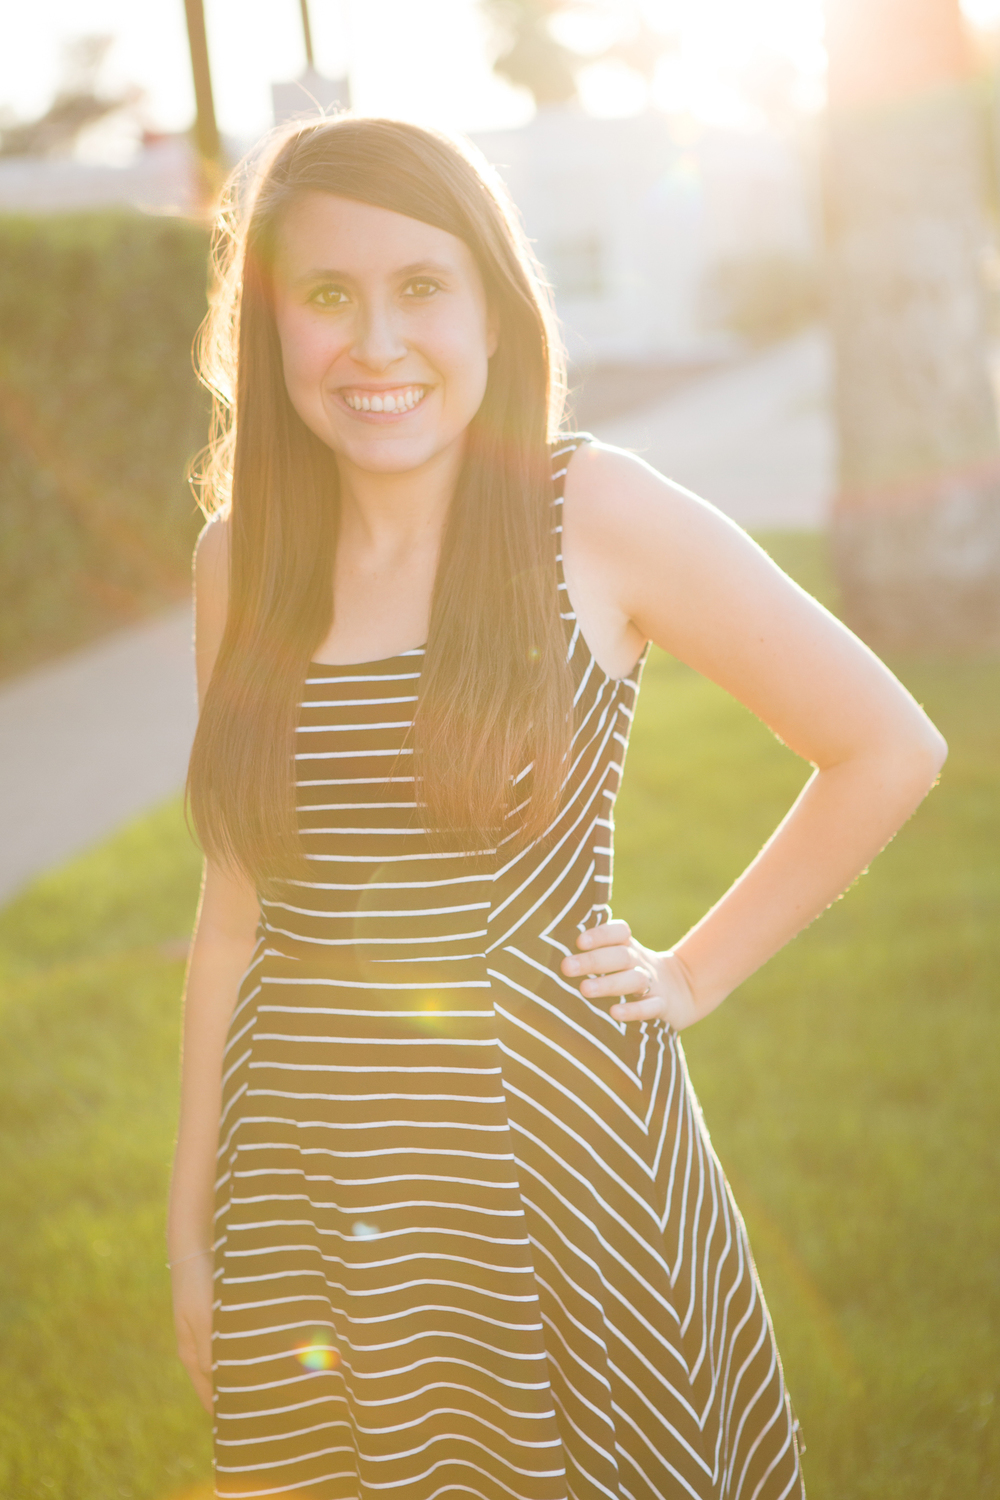 senior-photography-downtown-phoenix-lens-flare-bw-dress